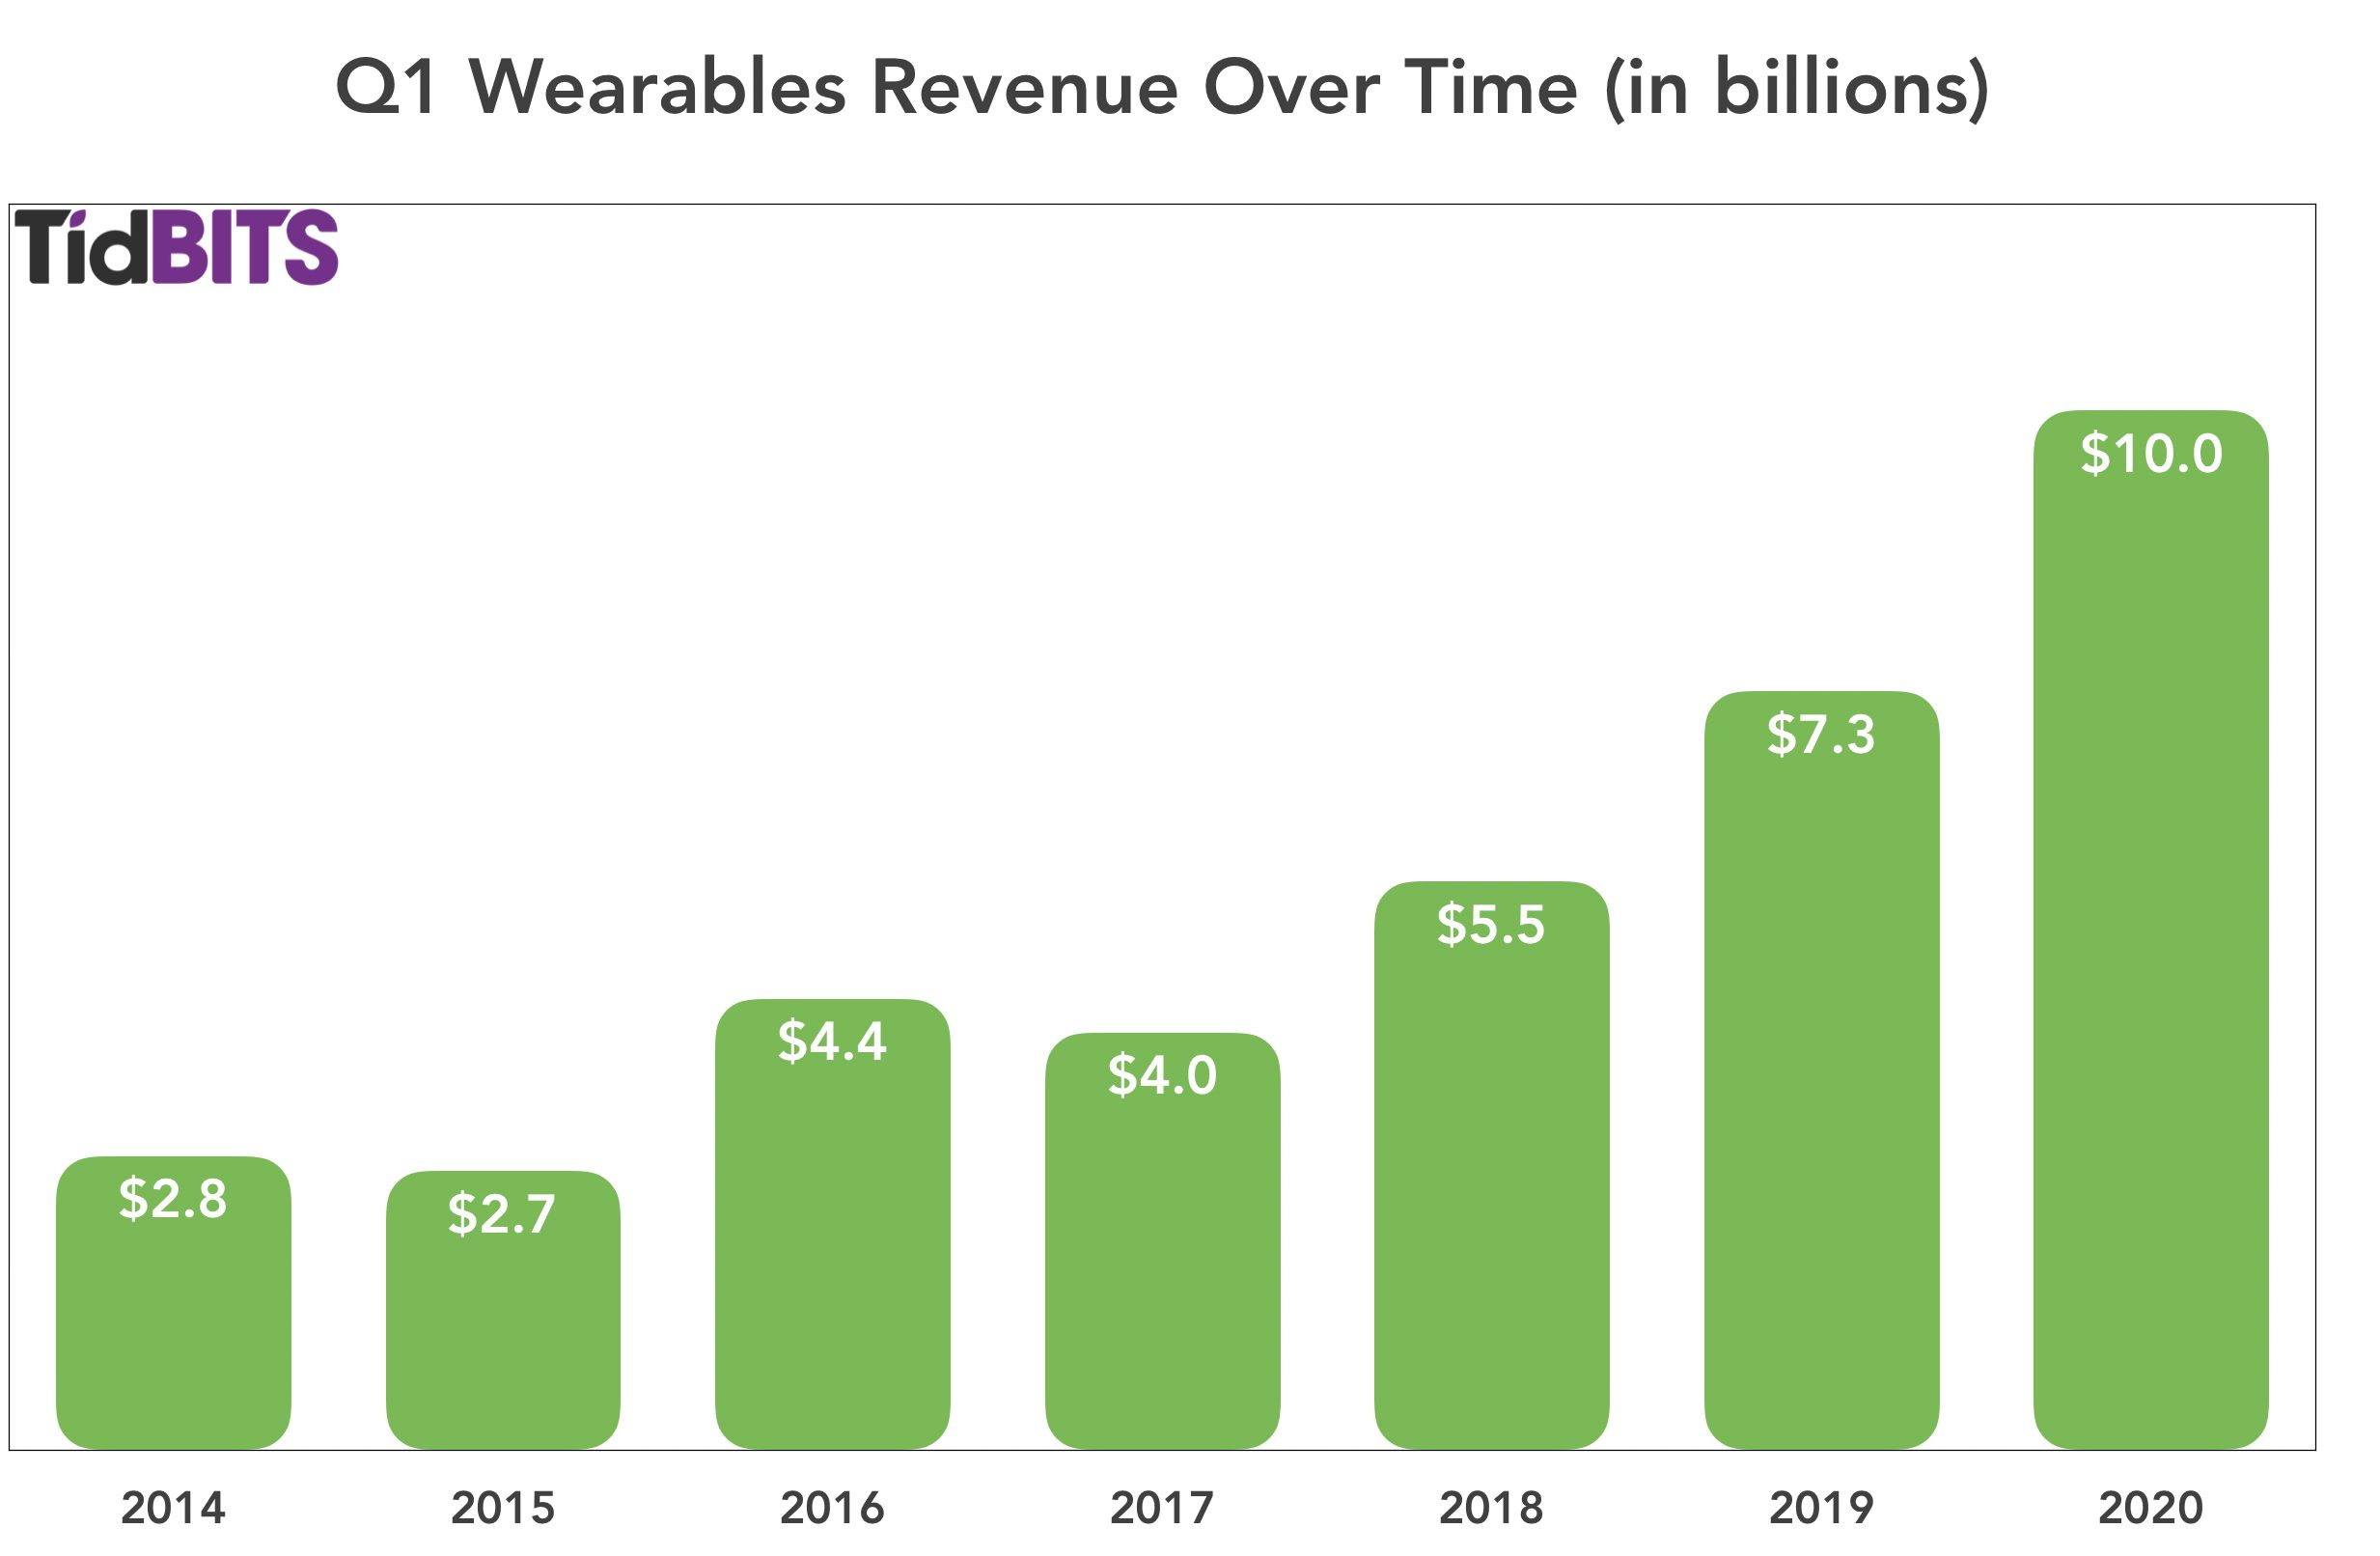 Q1 Wearables revenue over time